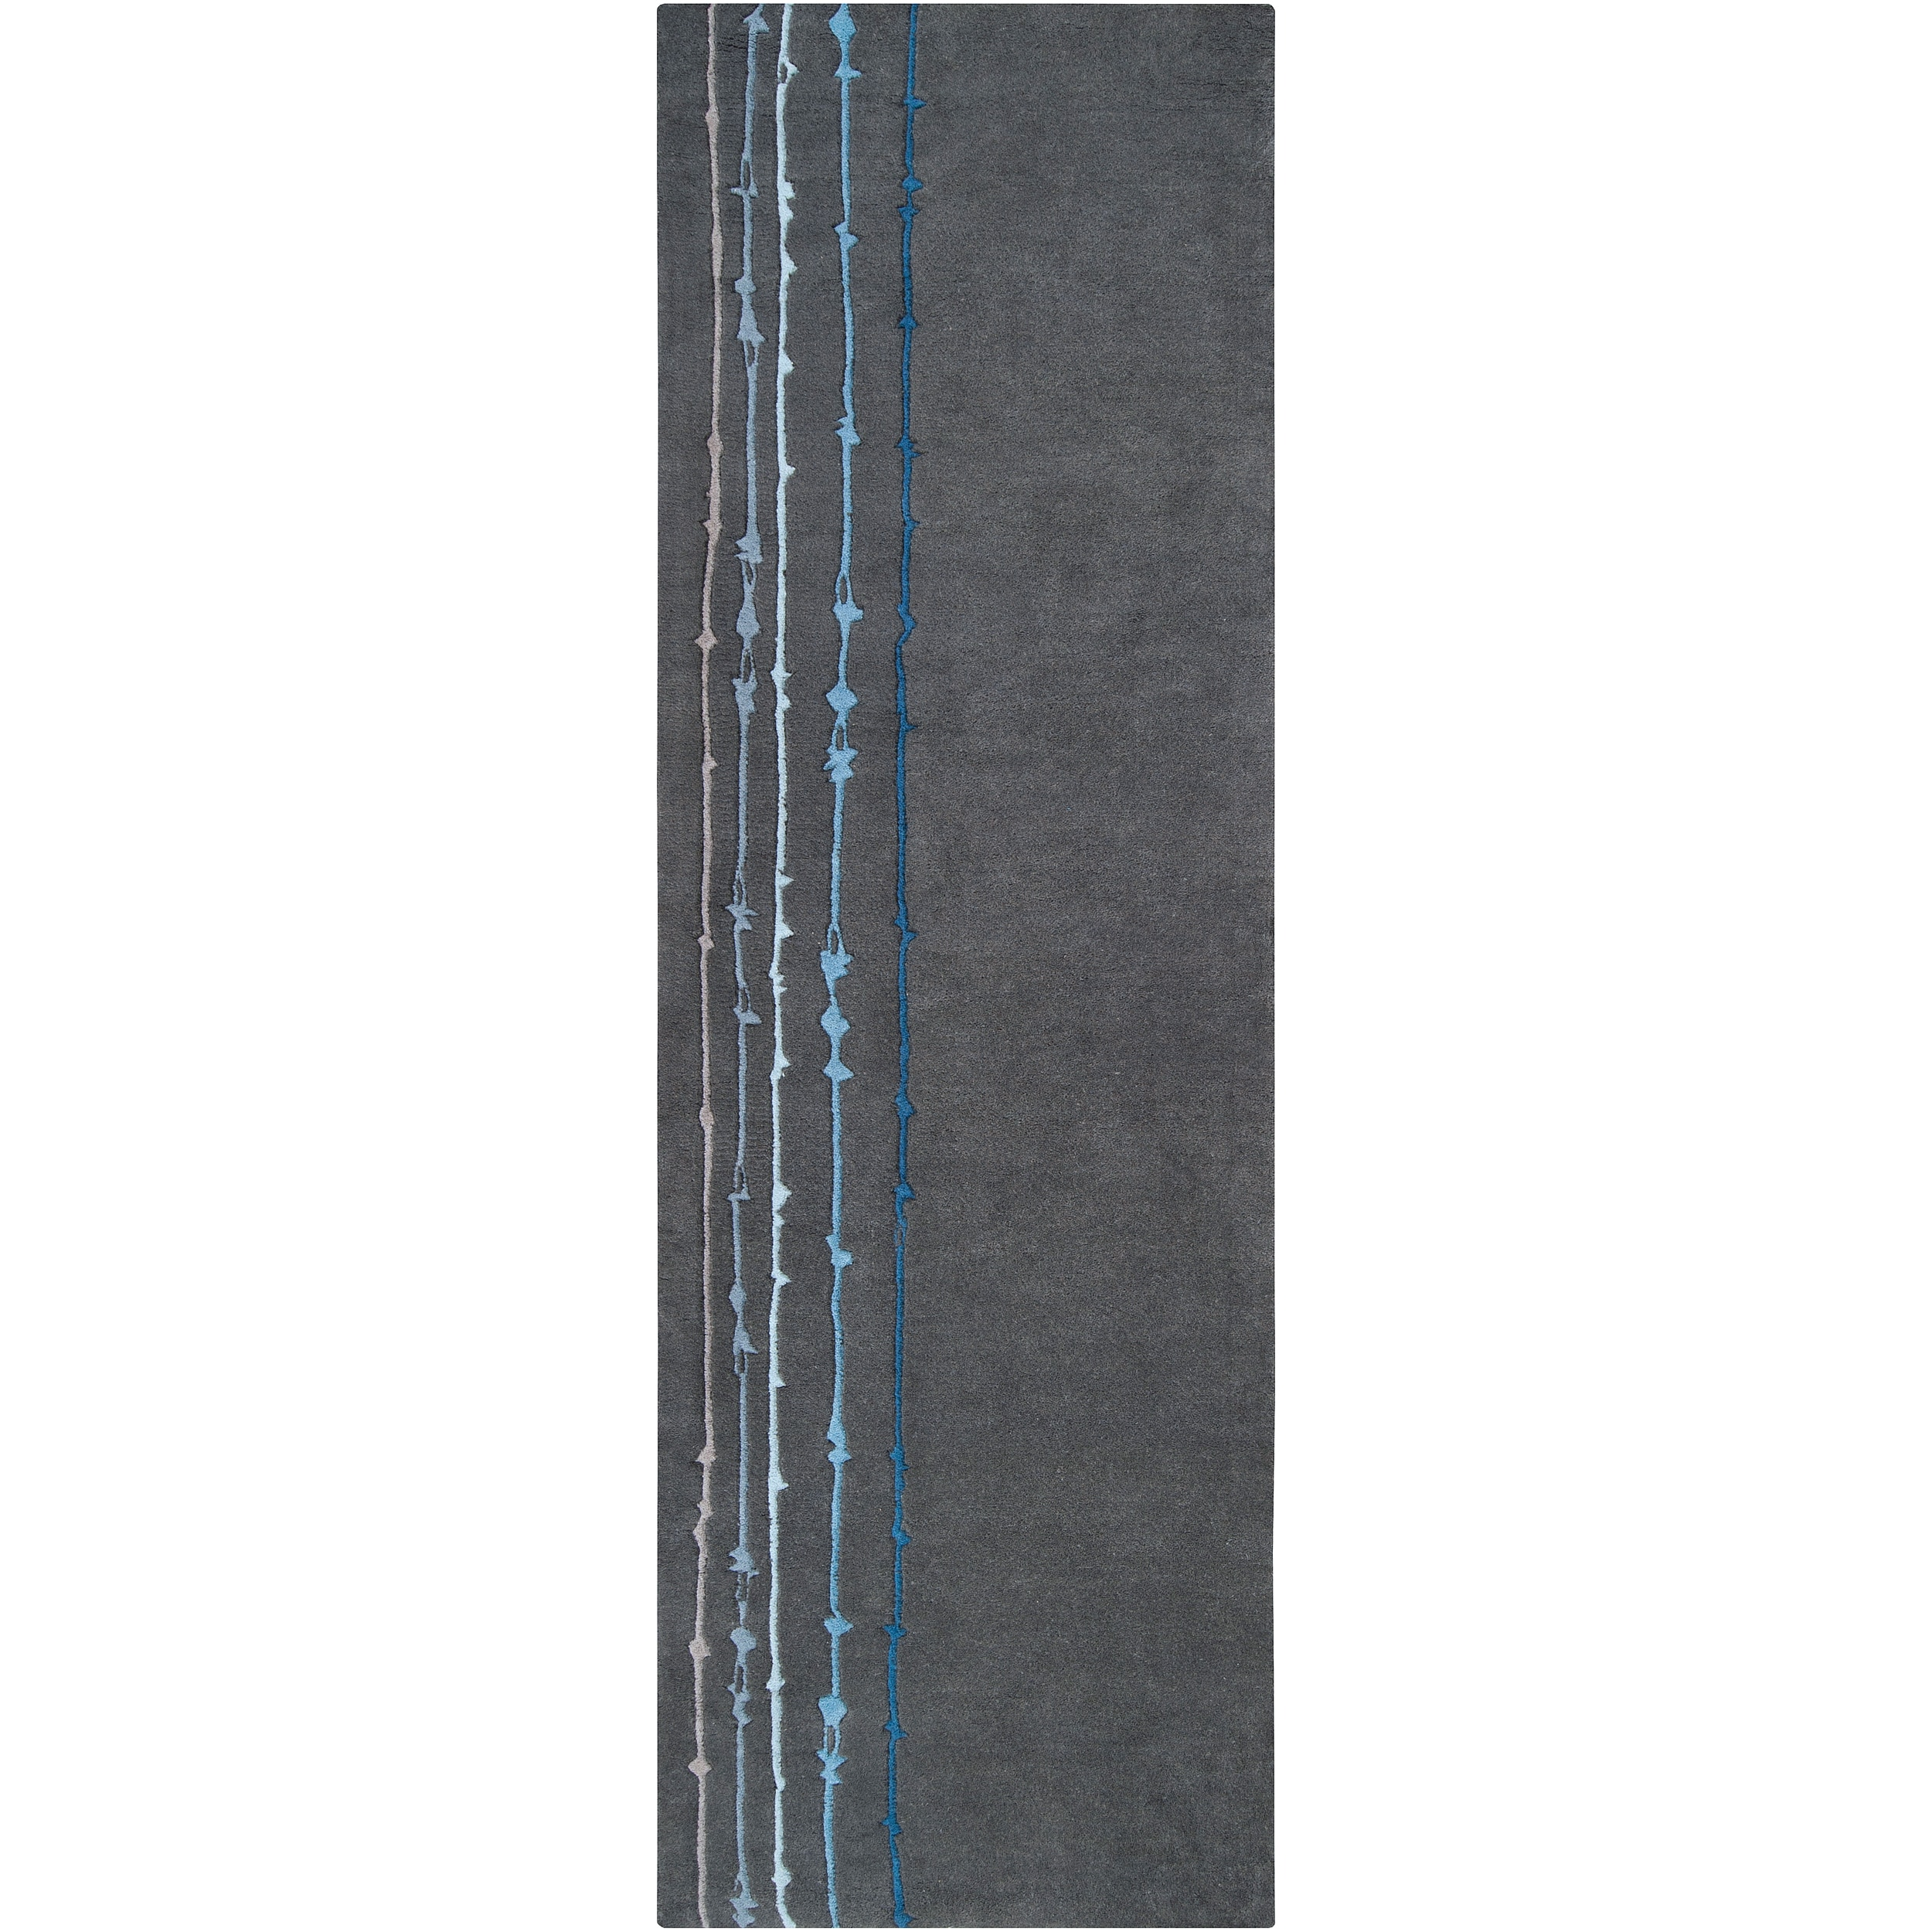 Noah Packard Hand-tufted Grey/ Blue Contemporary Tigris New Zealand Wool Abstract Rug (2'6 x 8')